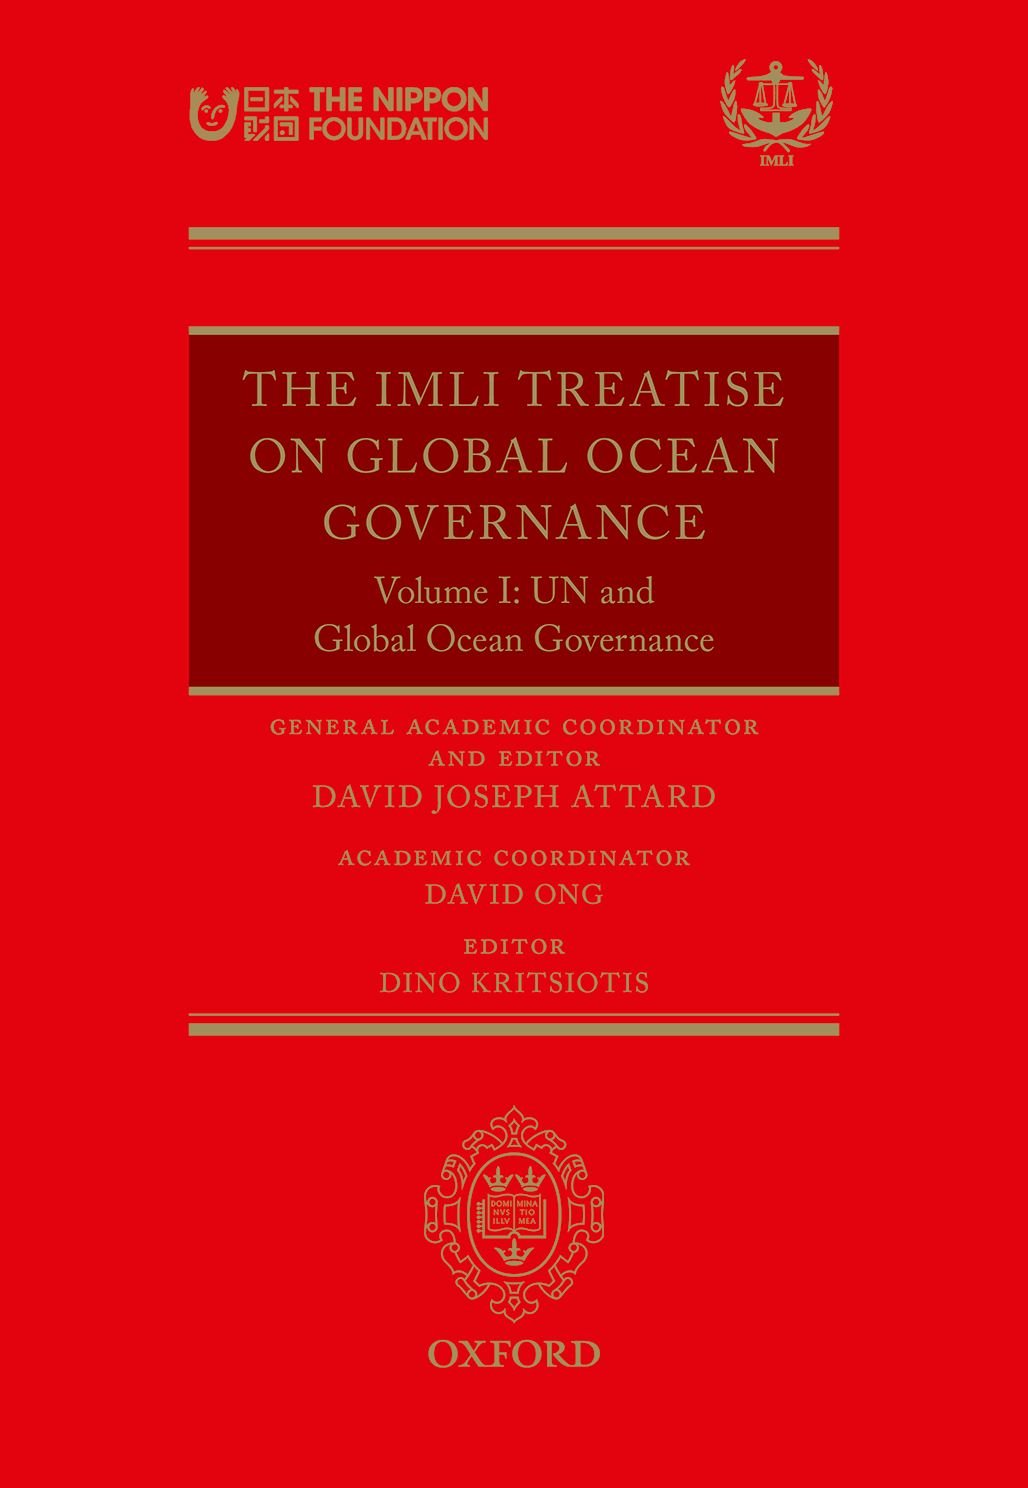 The IMLI Treatise On Global Ocean GovernanceVolume I: UN and Global Ocean Governance